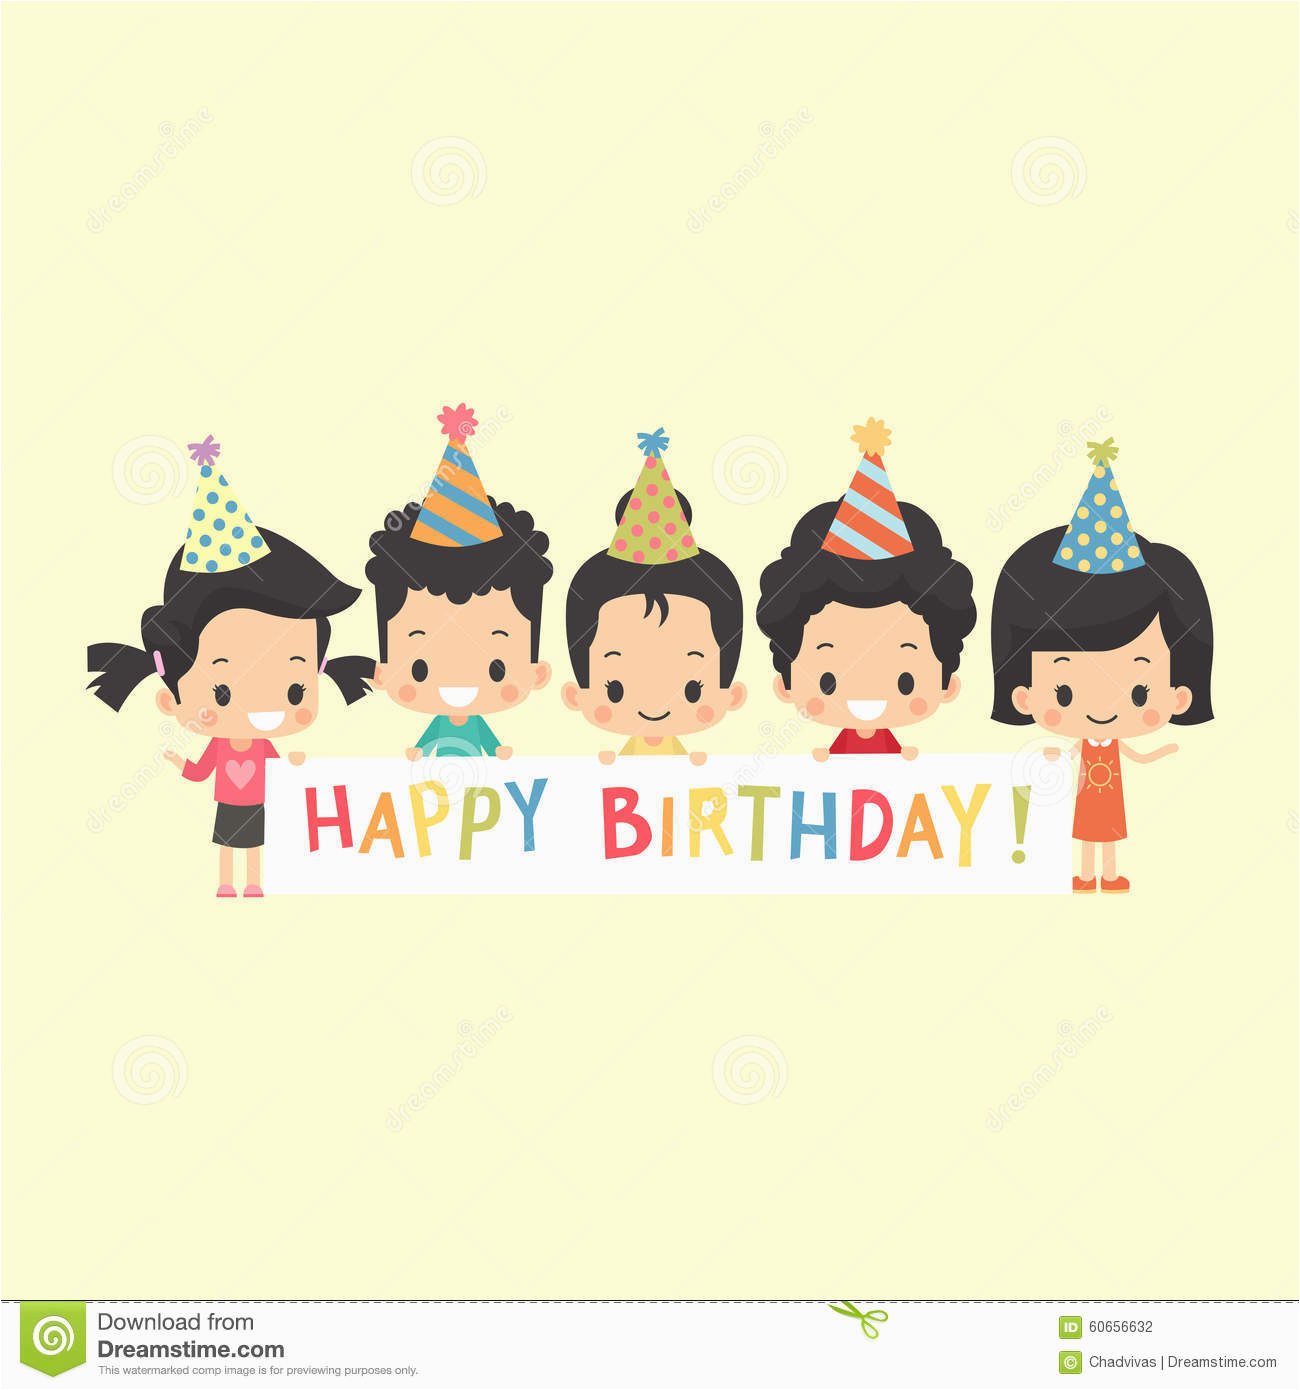 stock illustration asian kids happy birthday banner greeting white blank image60656632